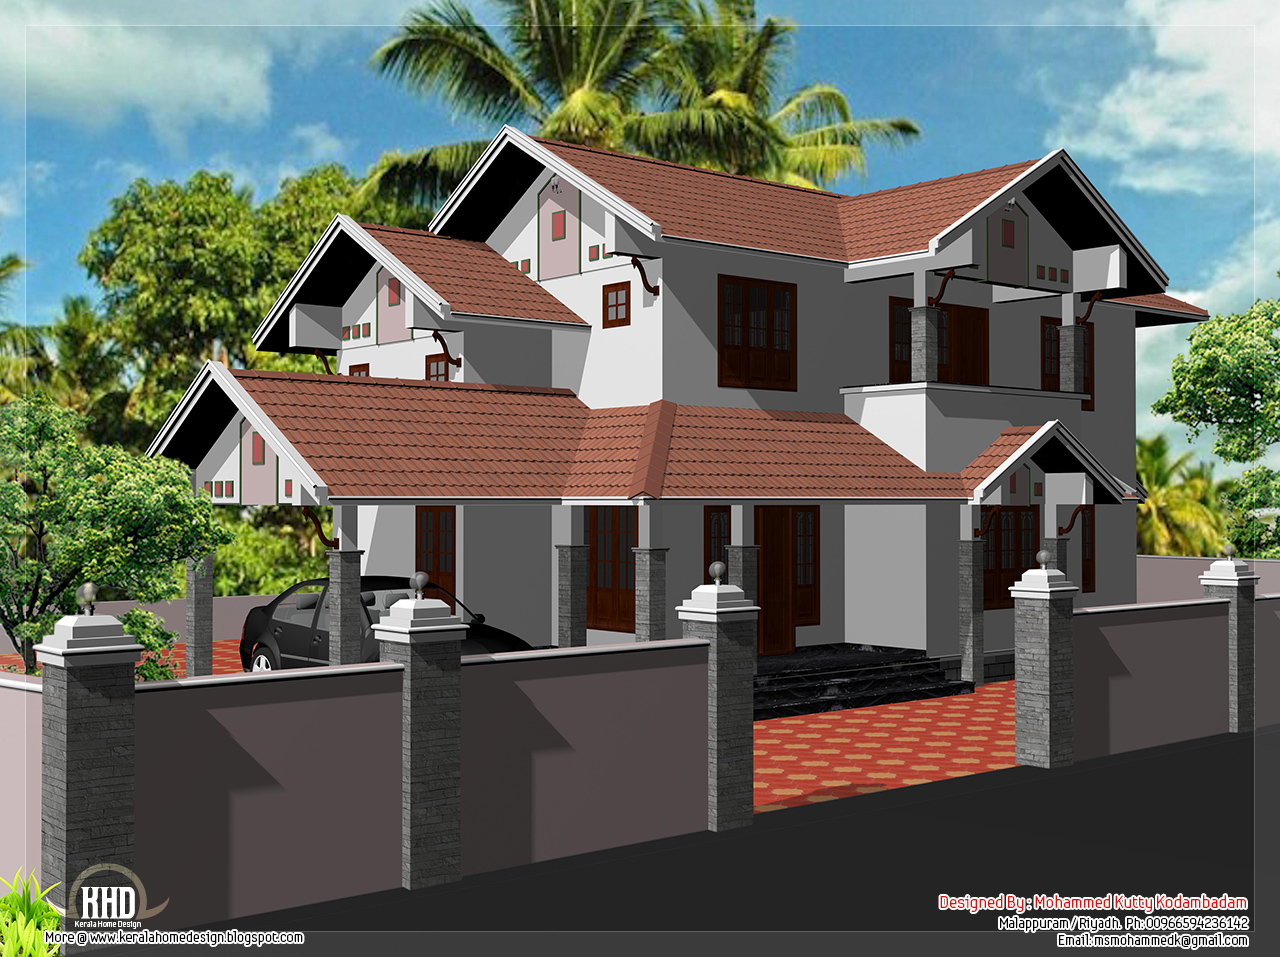 2000 house elevation design kerala home for Home designs 2000 sq ft